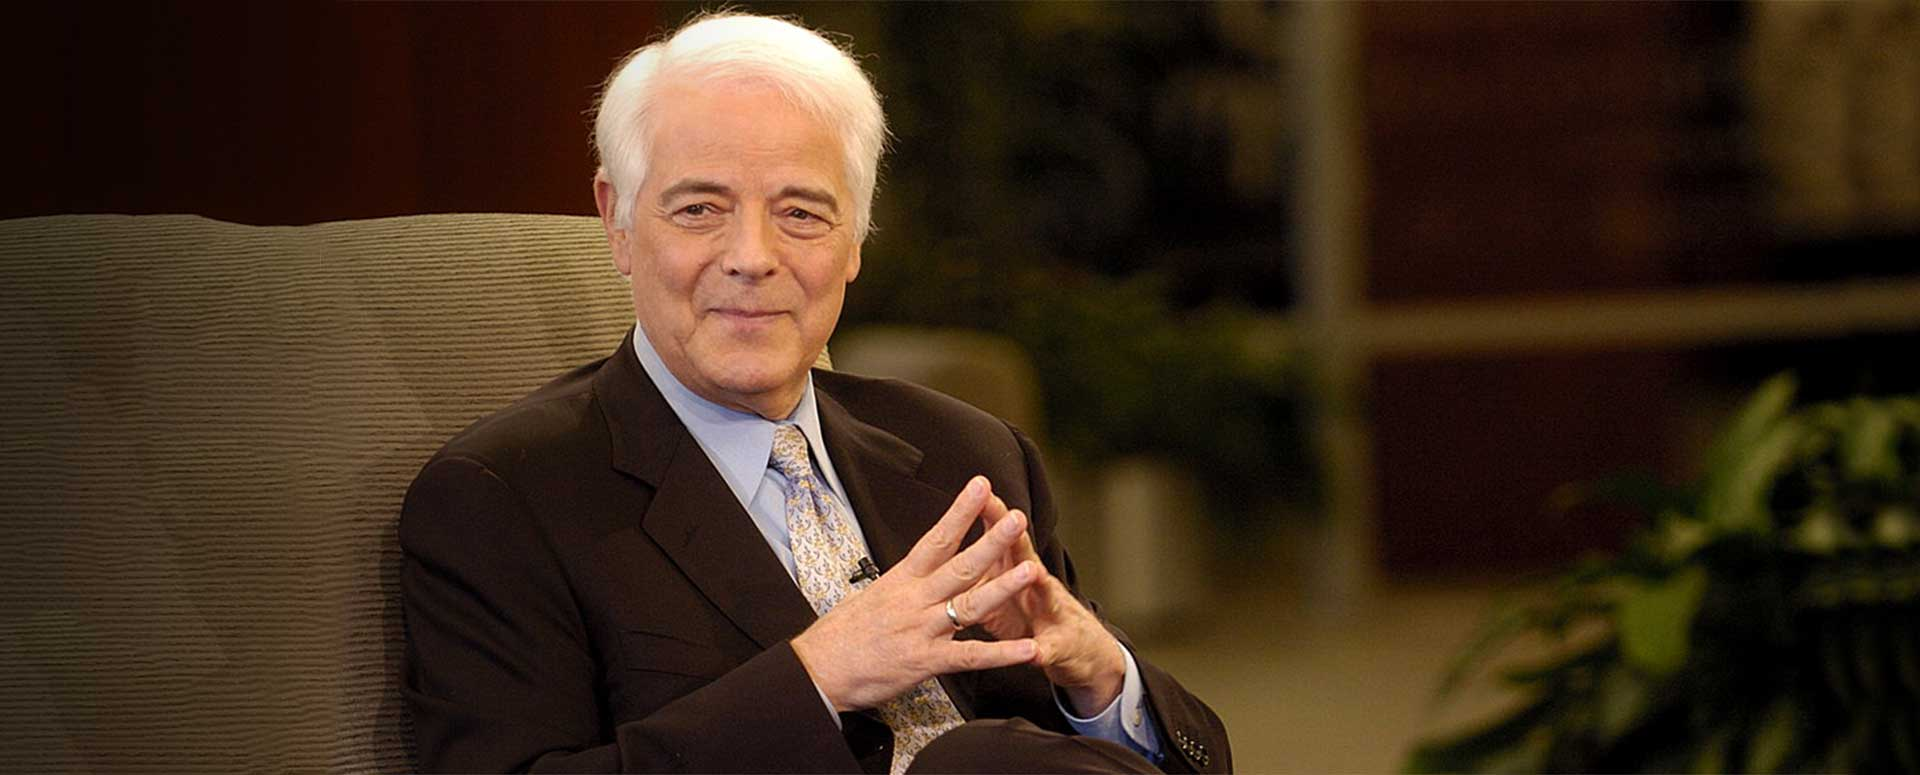 where was Nick Clooney born